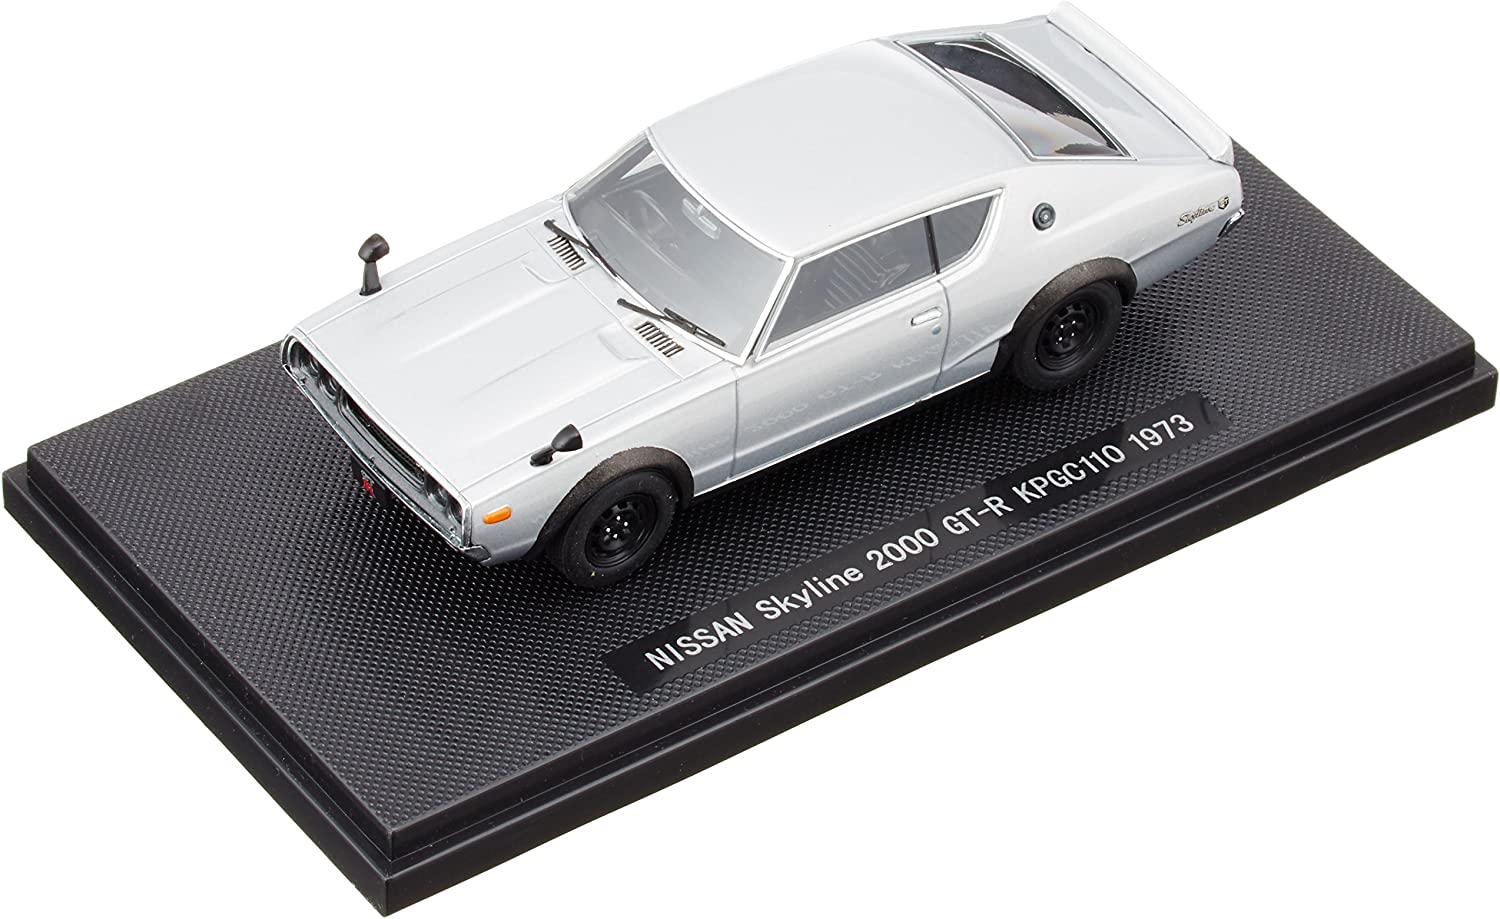 EBRRO 1 43 Nissan Skyline GT-R KPGC110 (44073) (japan import)